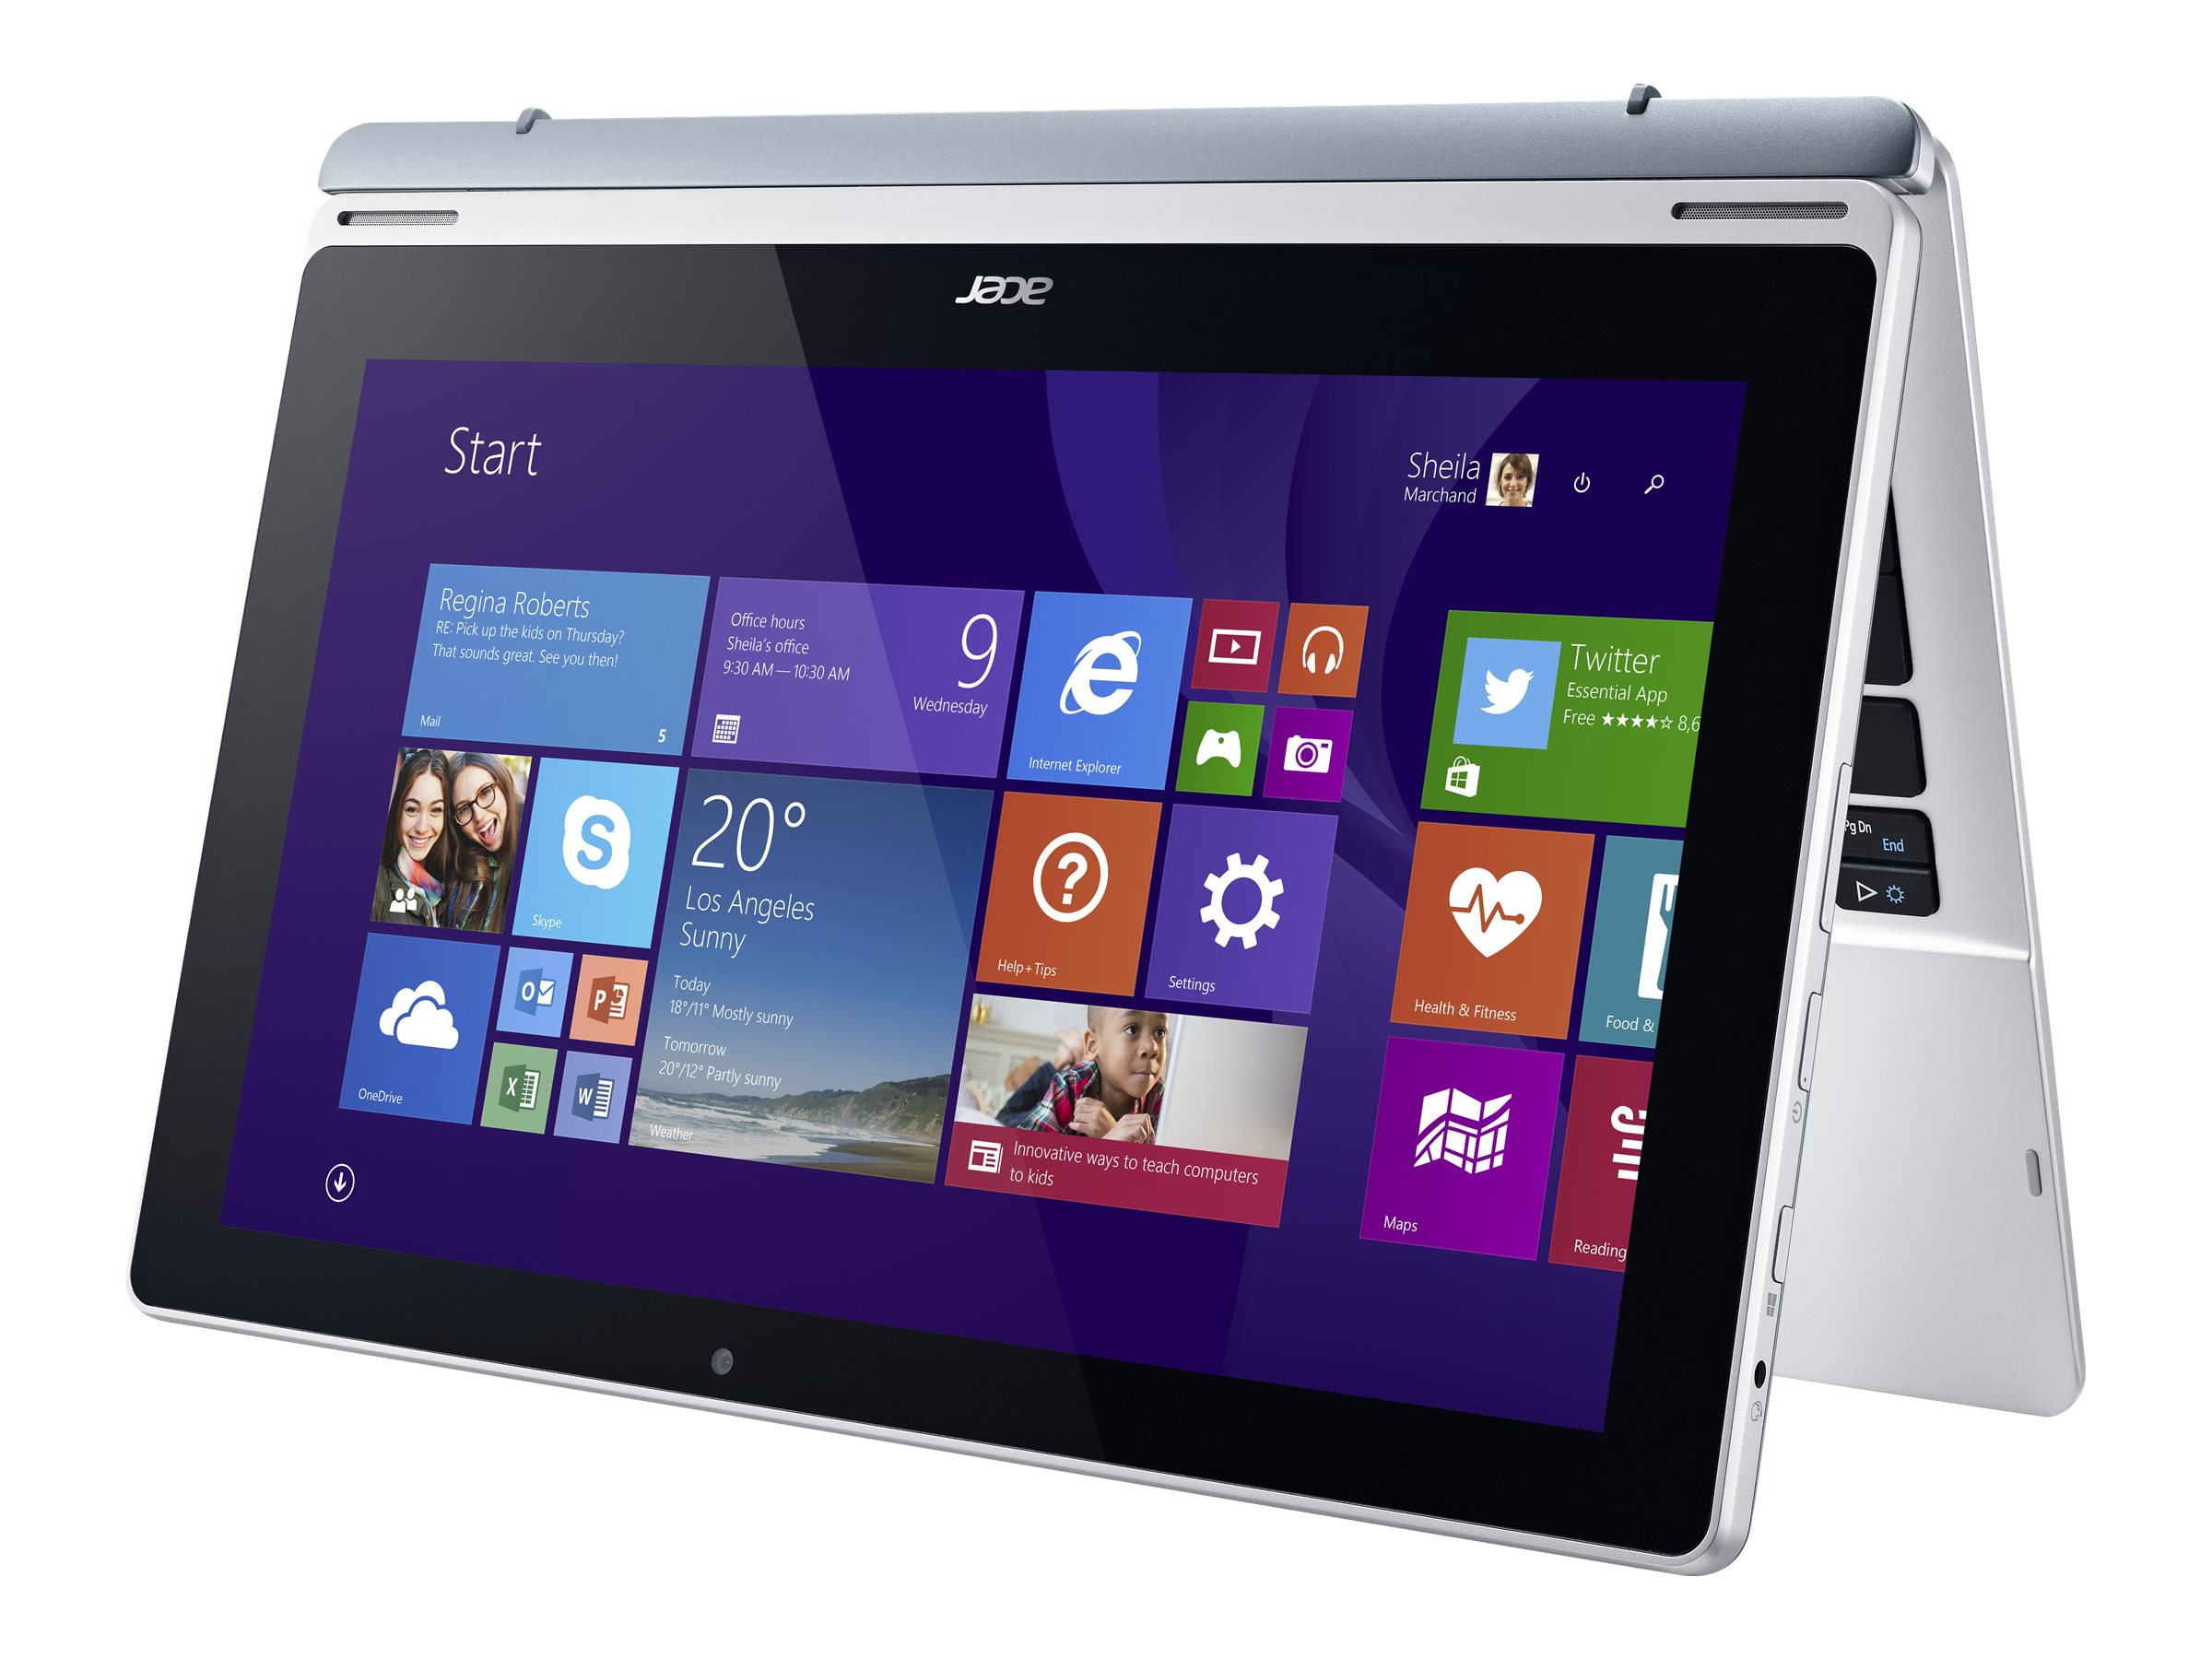 Acer Aspire Switch SW5-171P-82B3 1.6GHz processor Windows 8.1 Pro 64-bit, NT.L6SAA.005, 18180871, Tablets